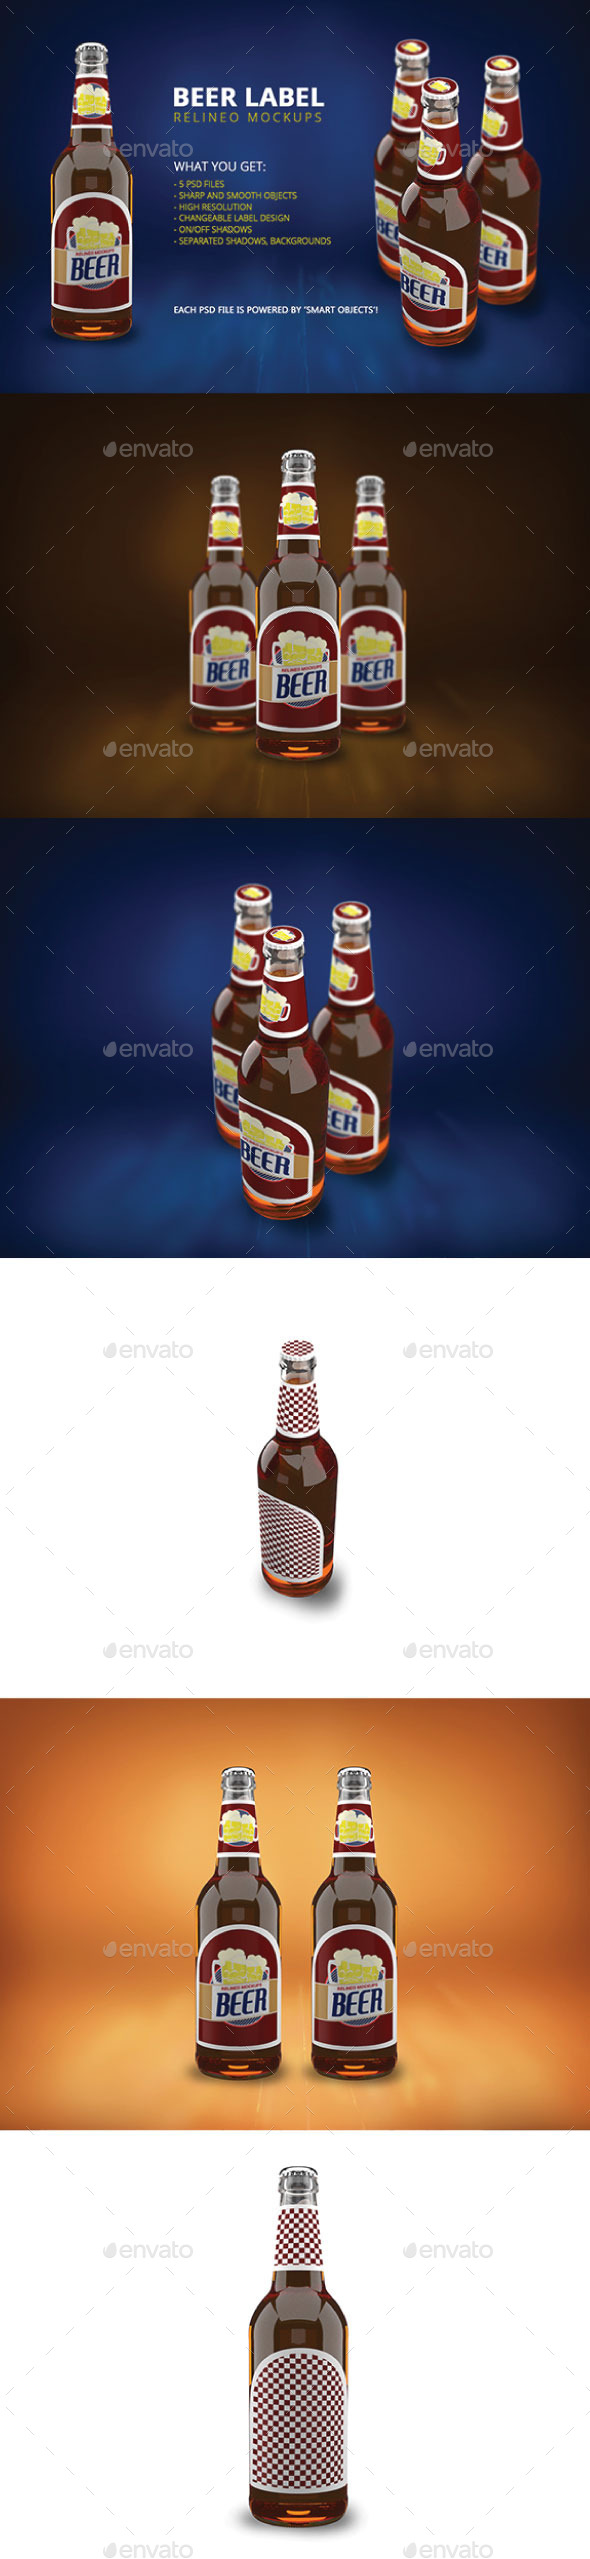 Beer Bottle Mock-up Pack Vol.2 - Food and Drink Packaging